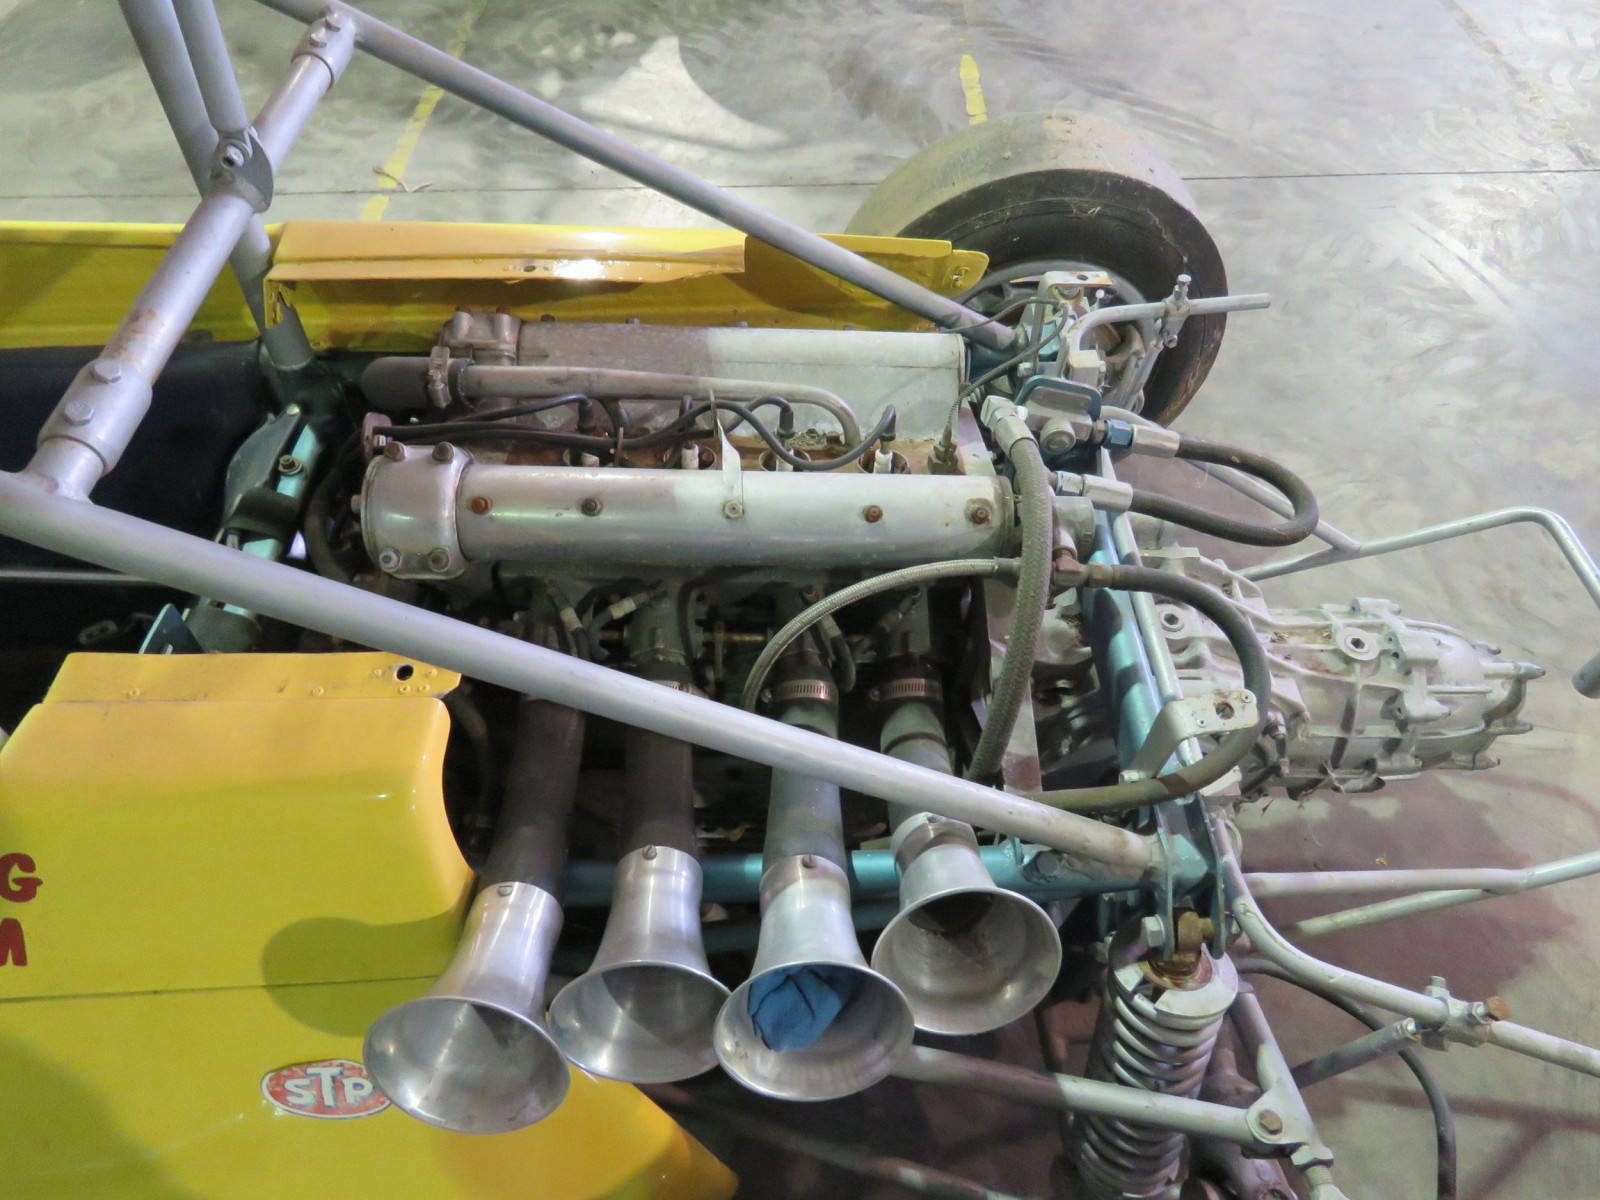 RARE Ken Brenn rear Engine 110 Beattie Midget Race Car - Image 9